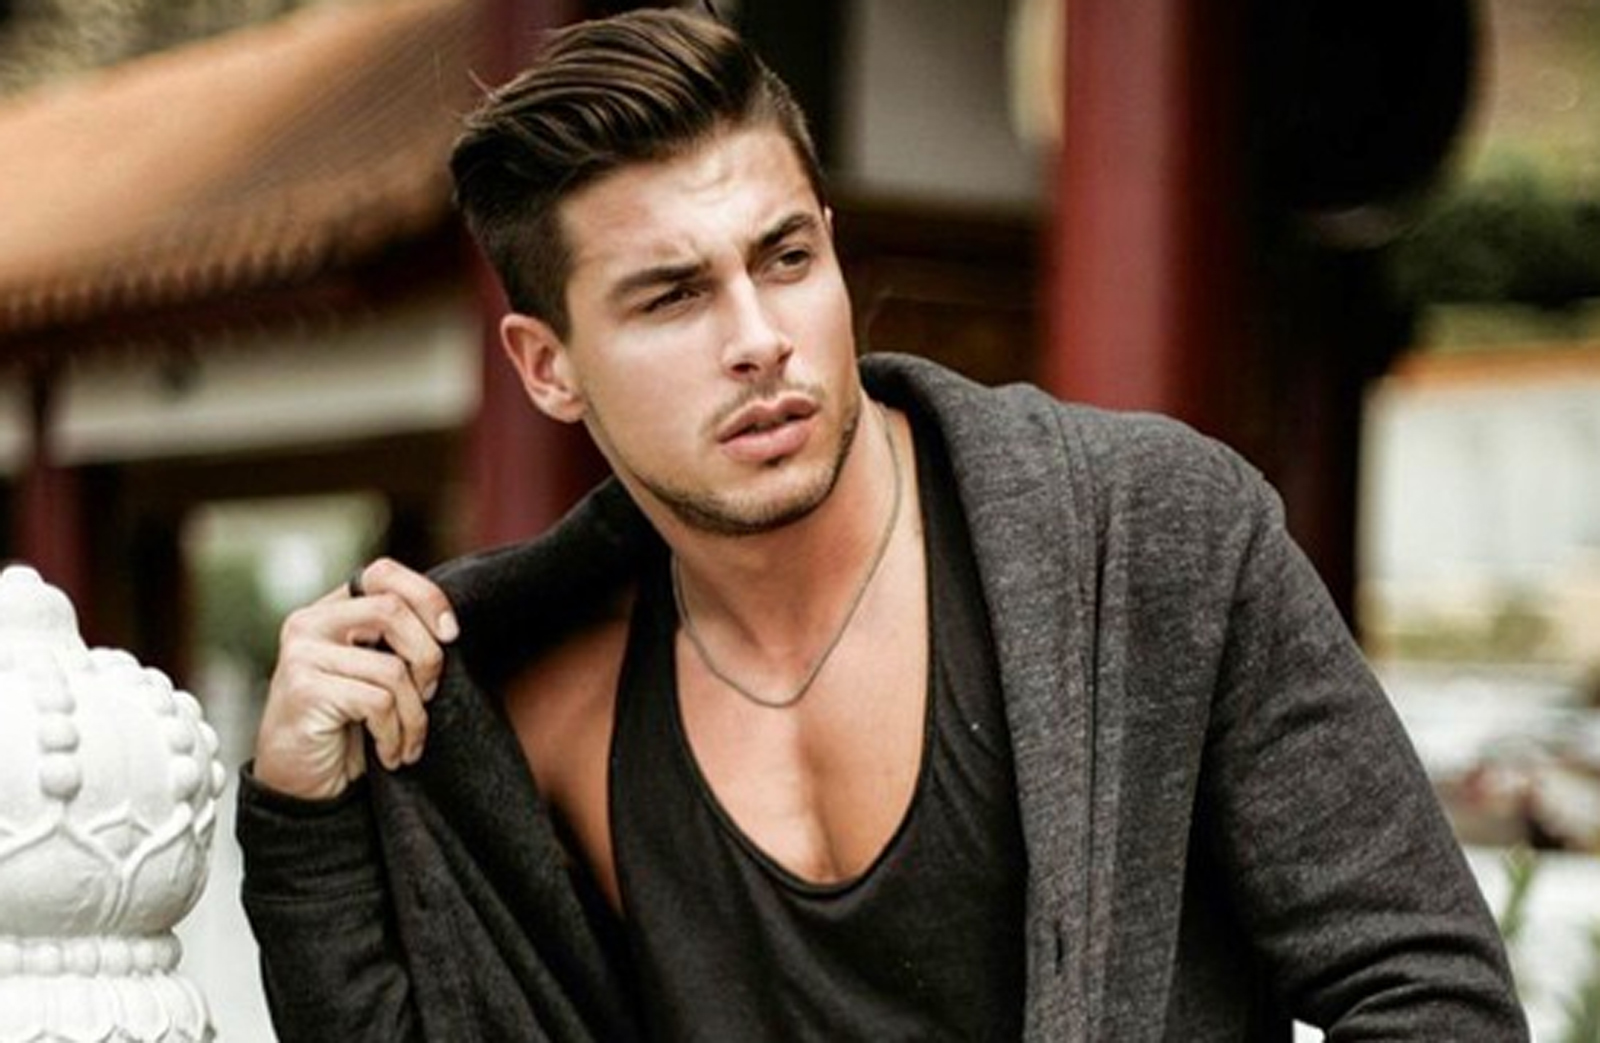 VIRAL: Wake Up to Italian Model Andrea Denver (and his Bulge)